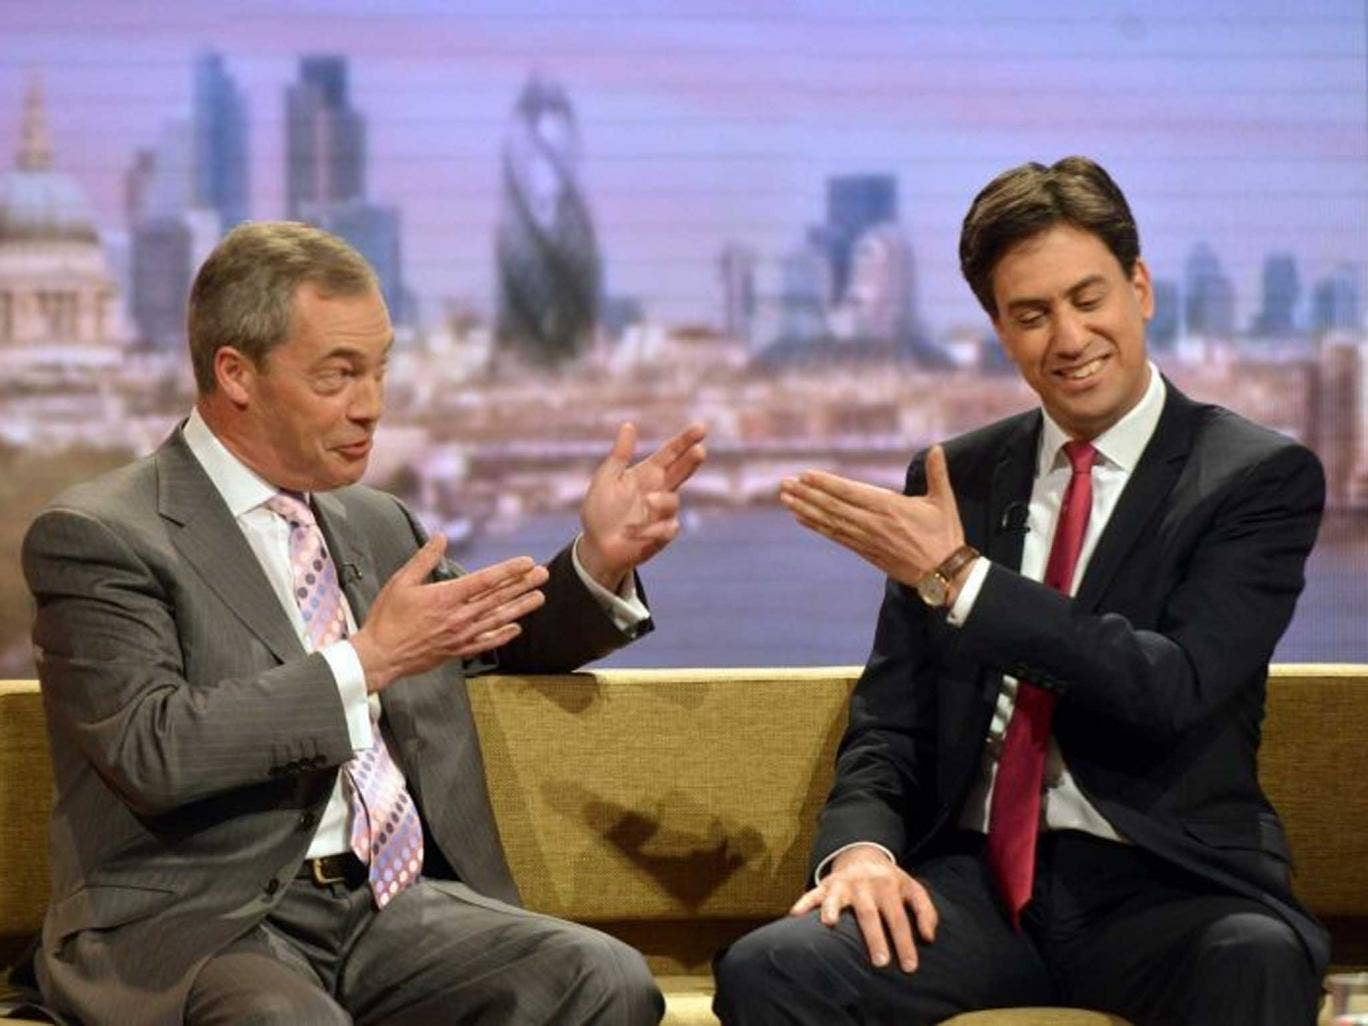 The Ukip leader was so positive about Miliband's performance that the Labour leader may soon be forced to rule out a red and purple Coalition